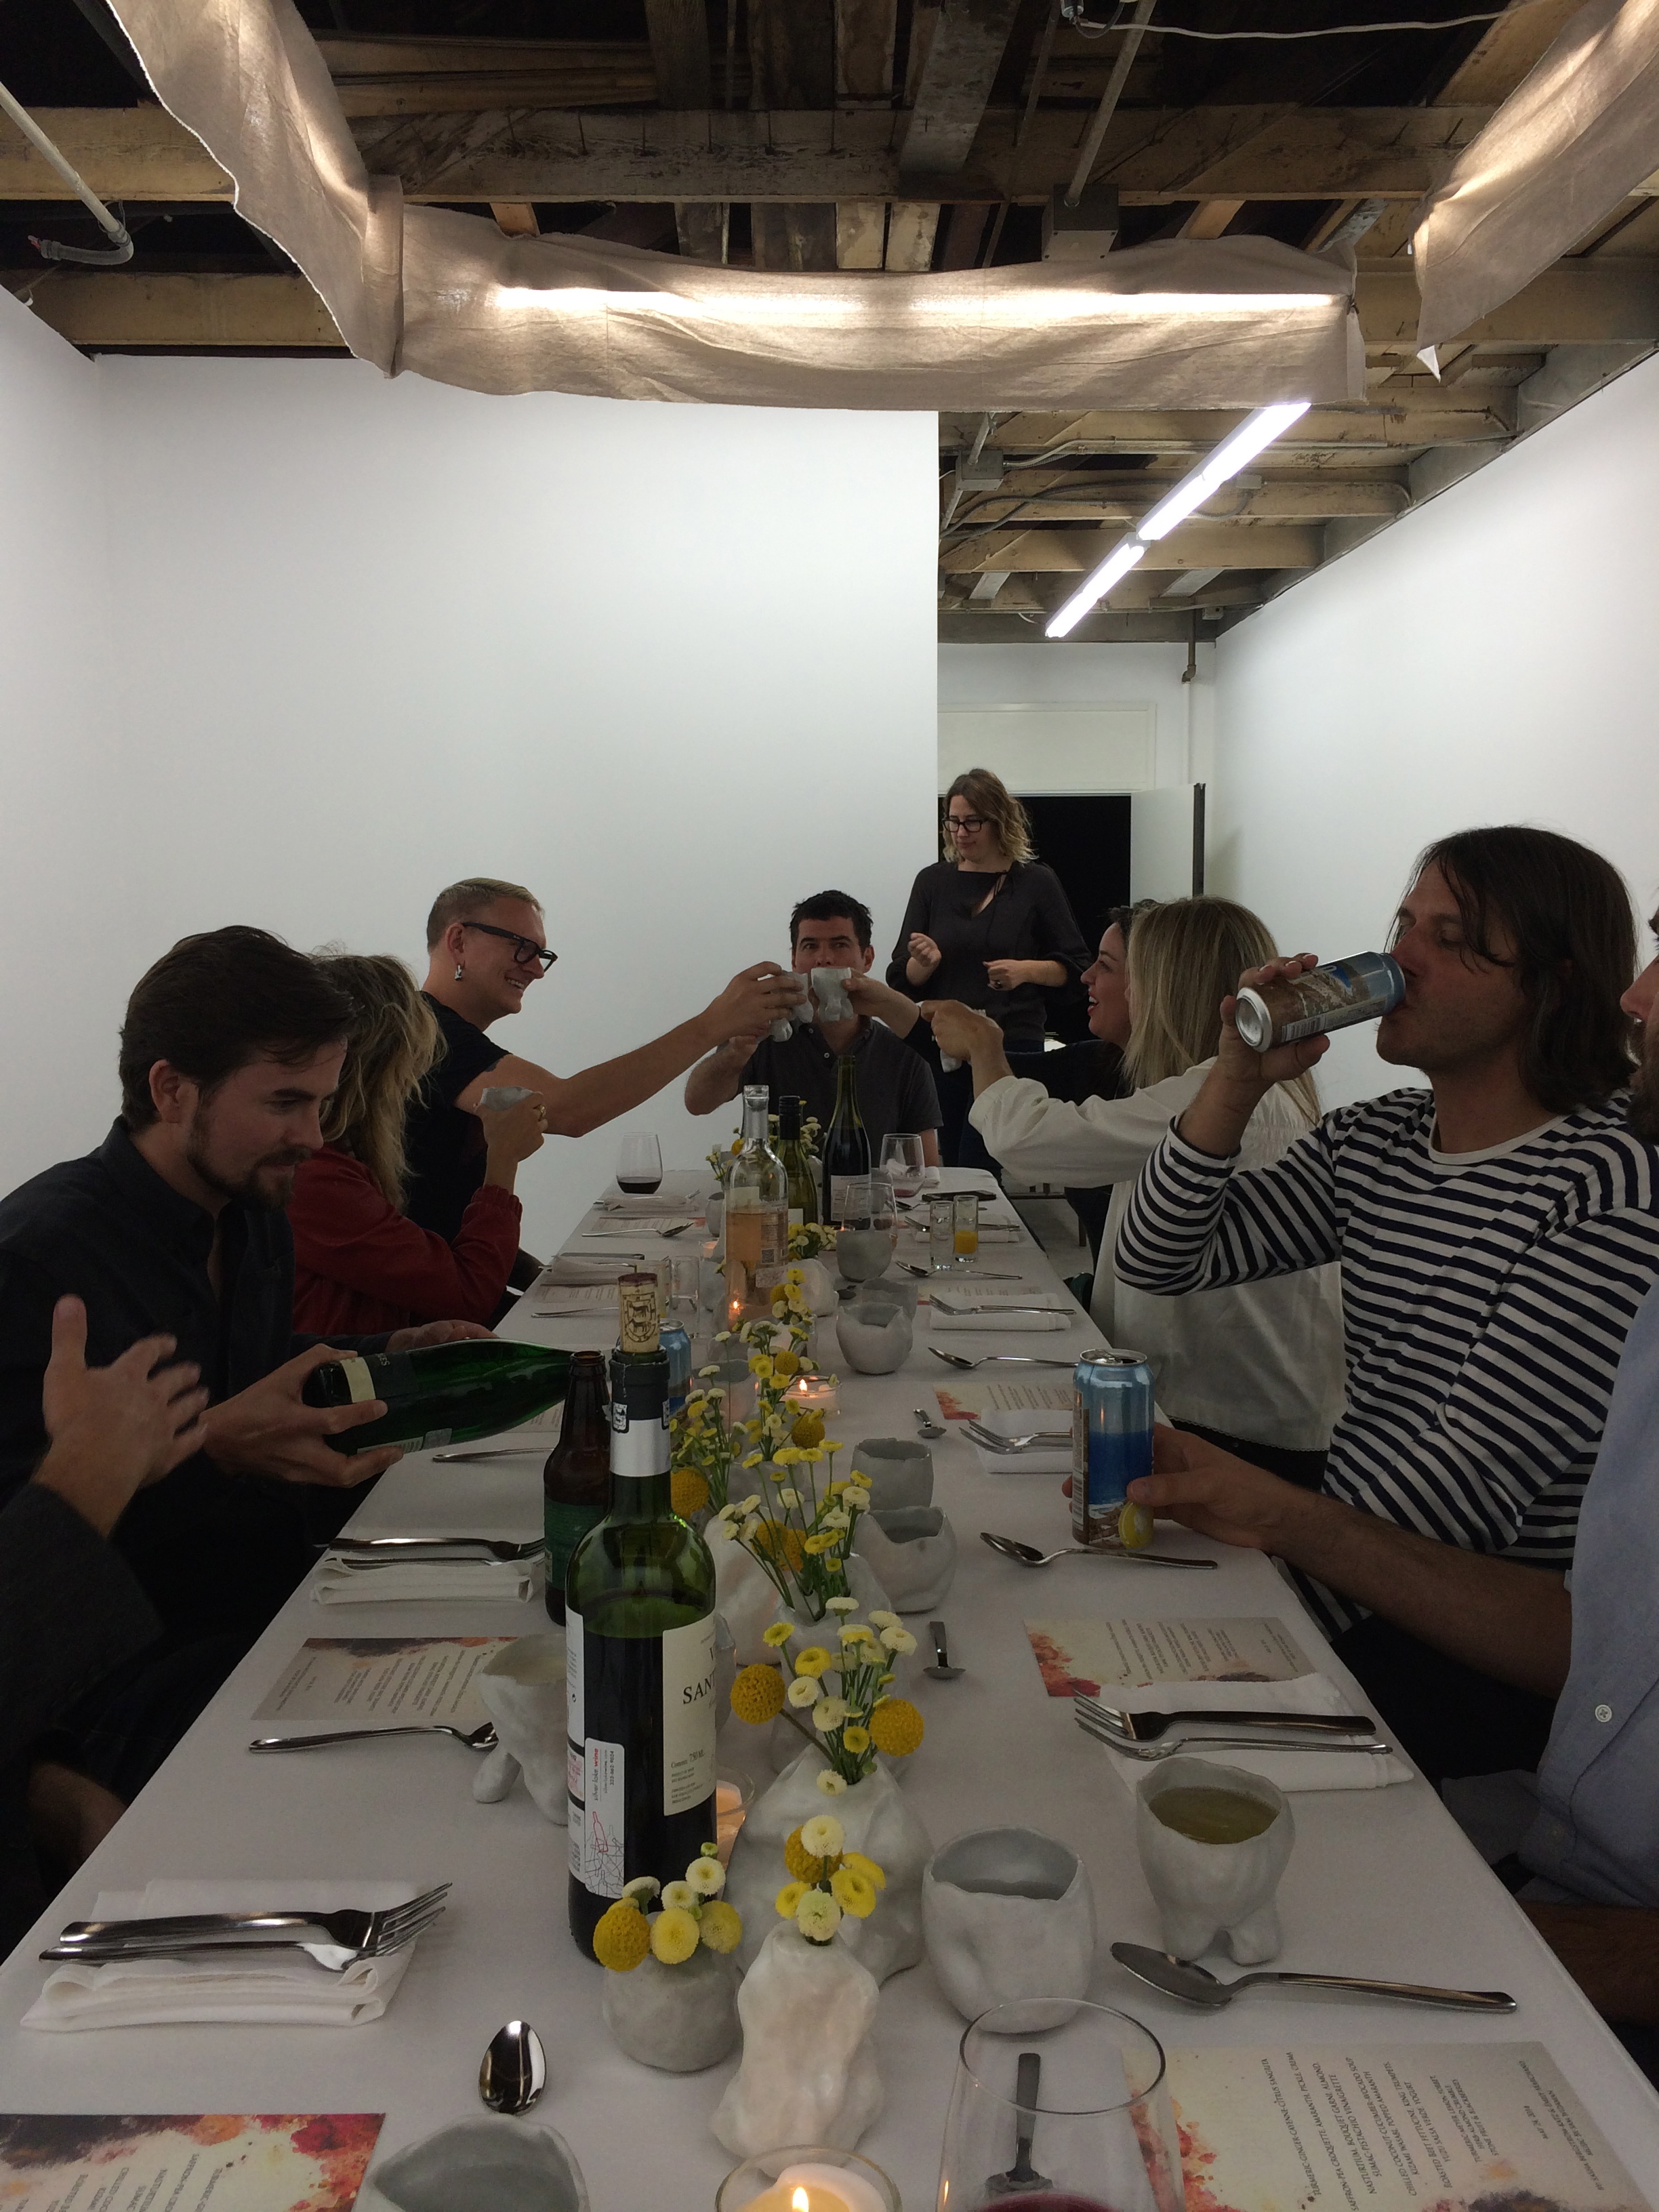 Dinner in the gallery